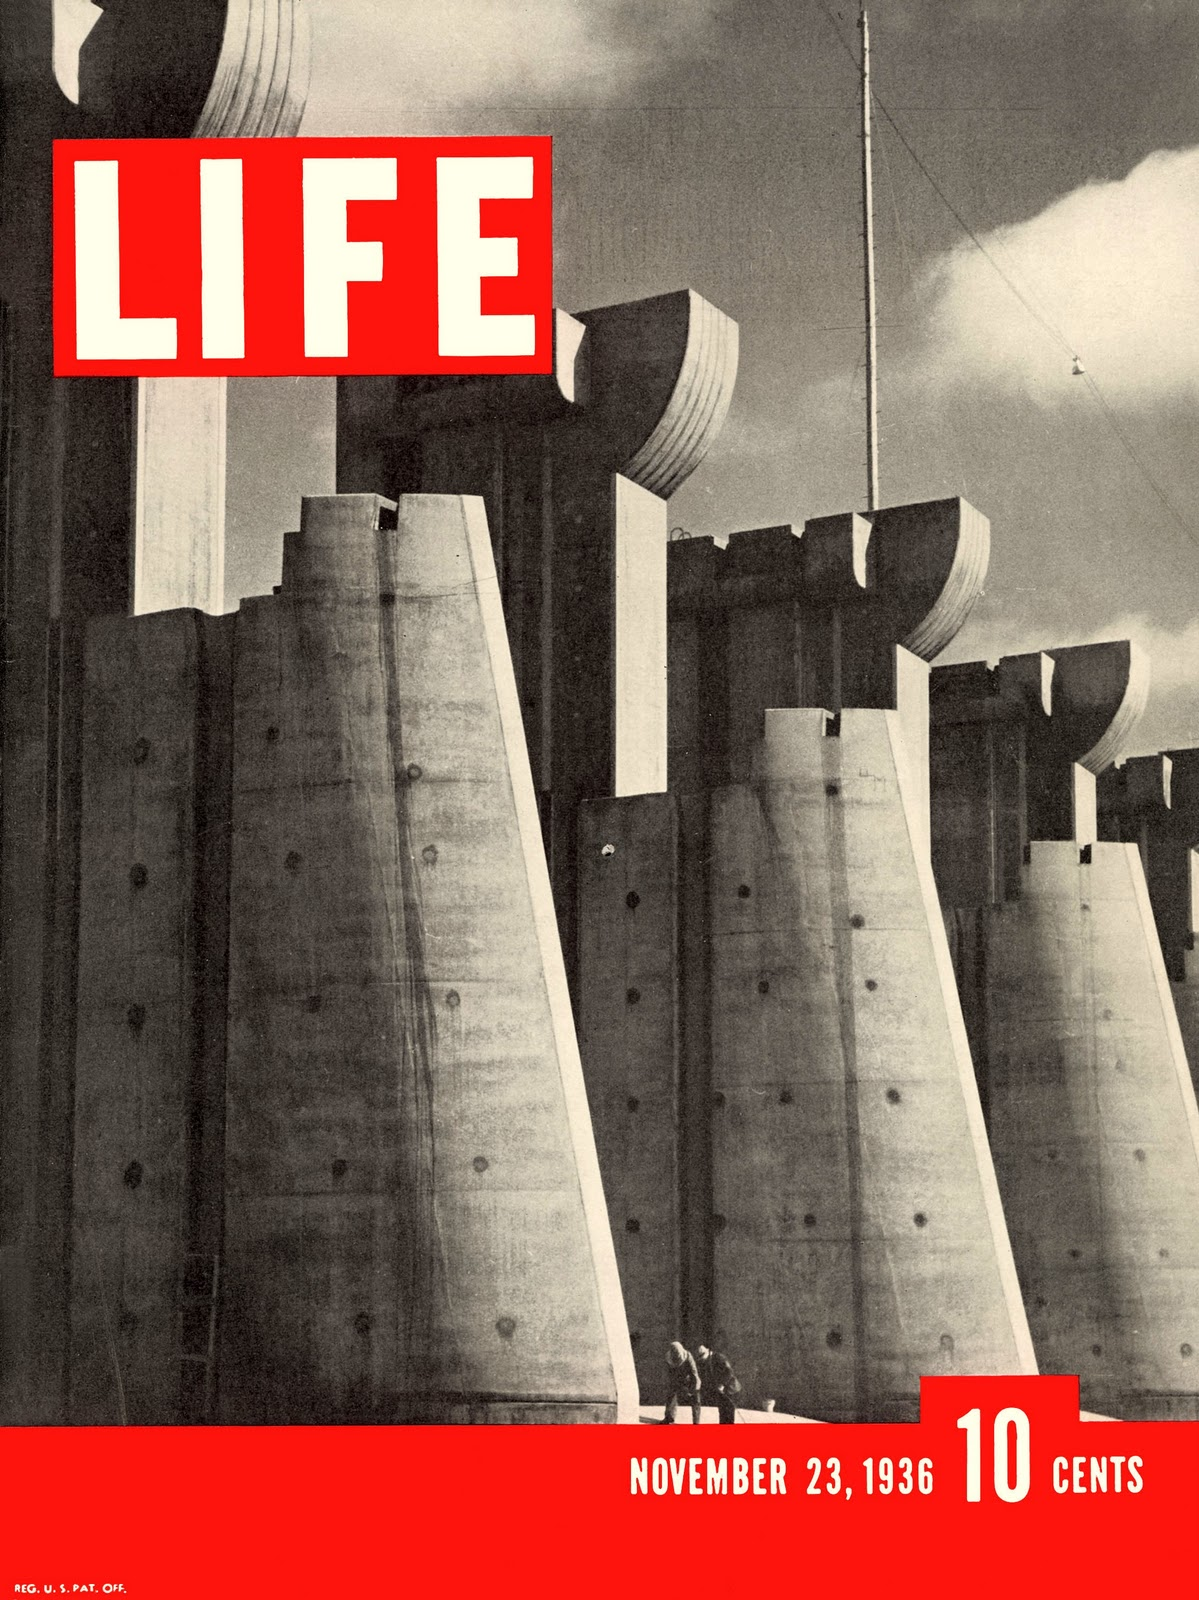 a reflection of the life and works of margaret bourke white Some of legendary life photographer margaret bourke-white's most stirring pictures, from liberty island to the gates of buchenwald.